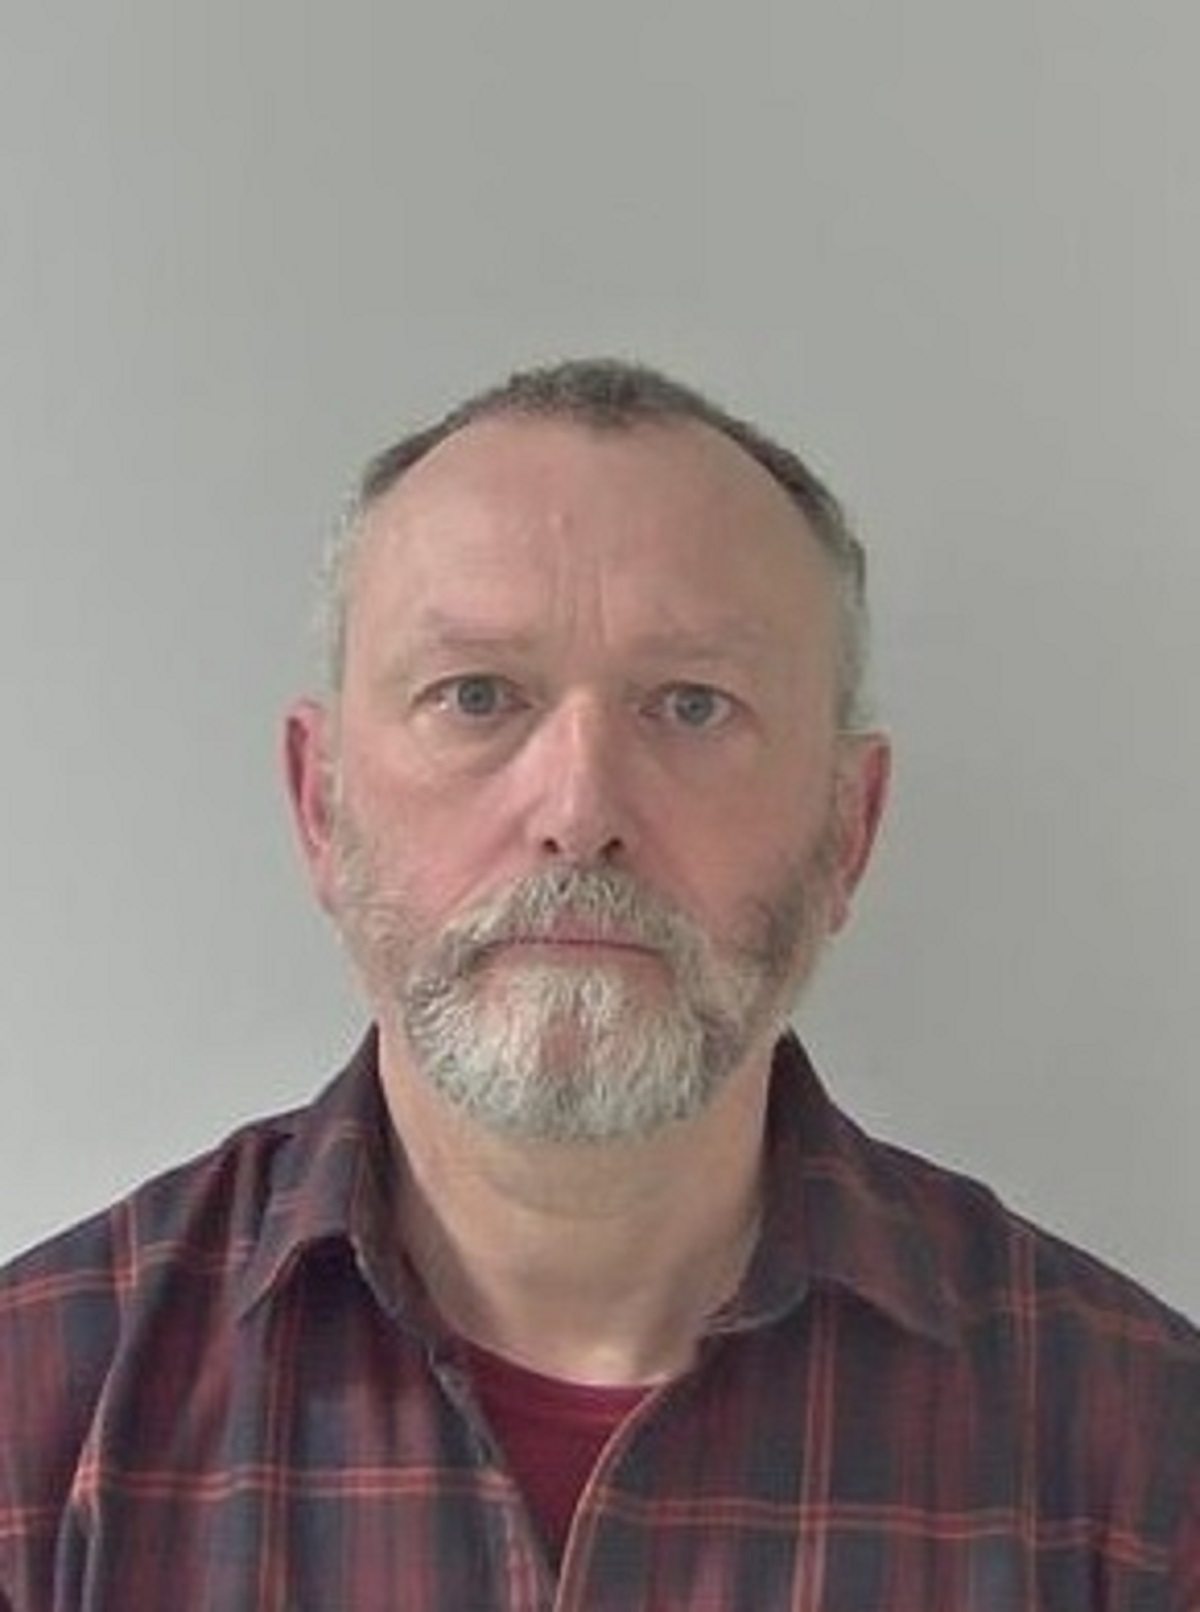 GUILTY: Richard Hayes-Hall. Photo: West Mercia Police